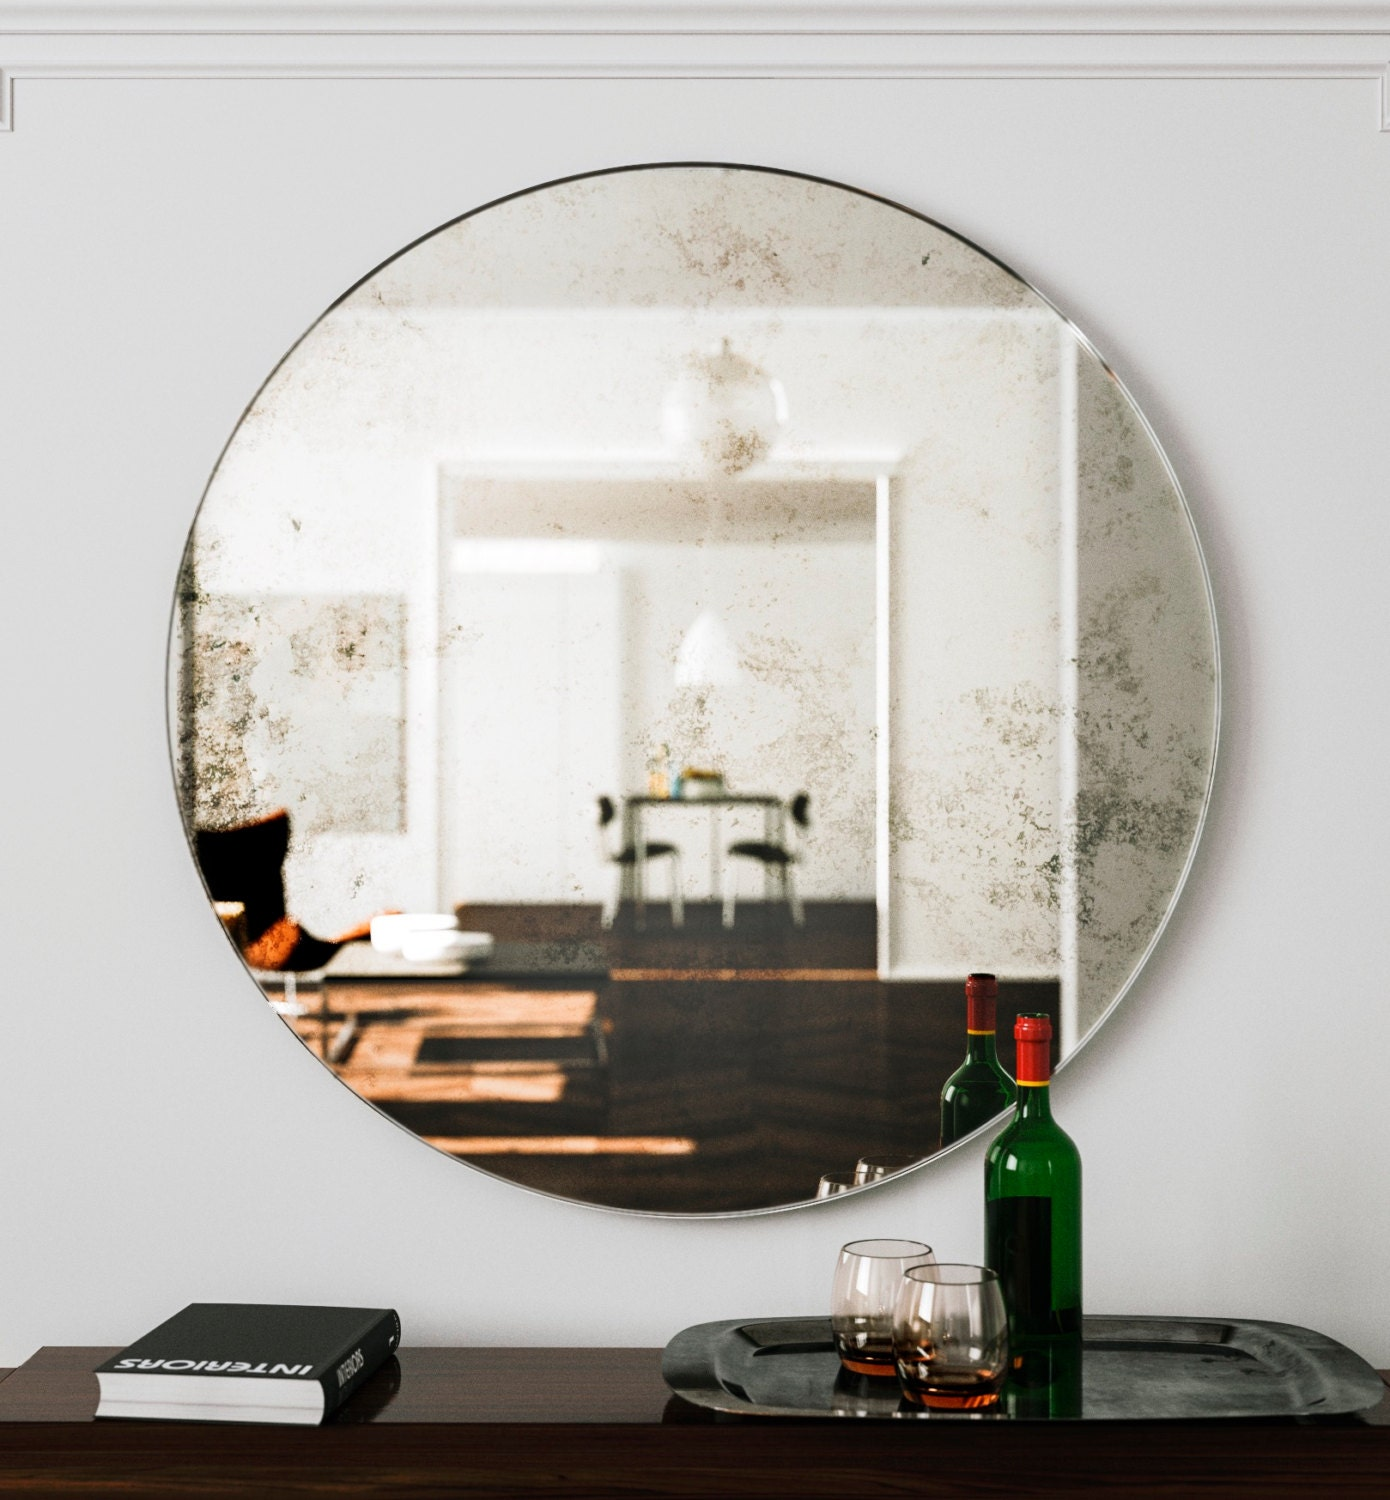 Oversized Round Wall Decor : Large wall mirror unique round art deco hanging glass